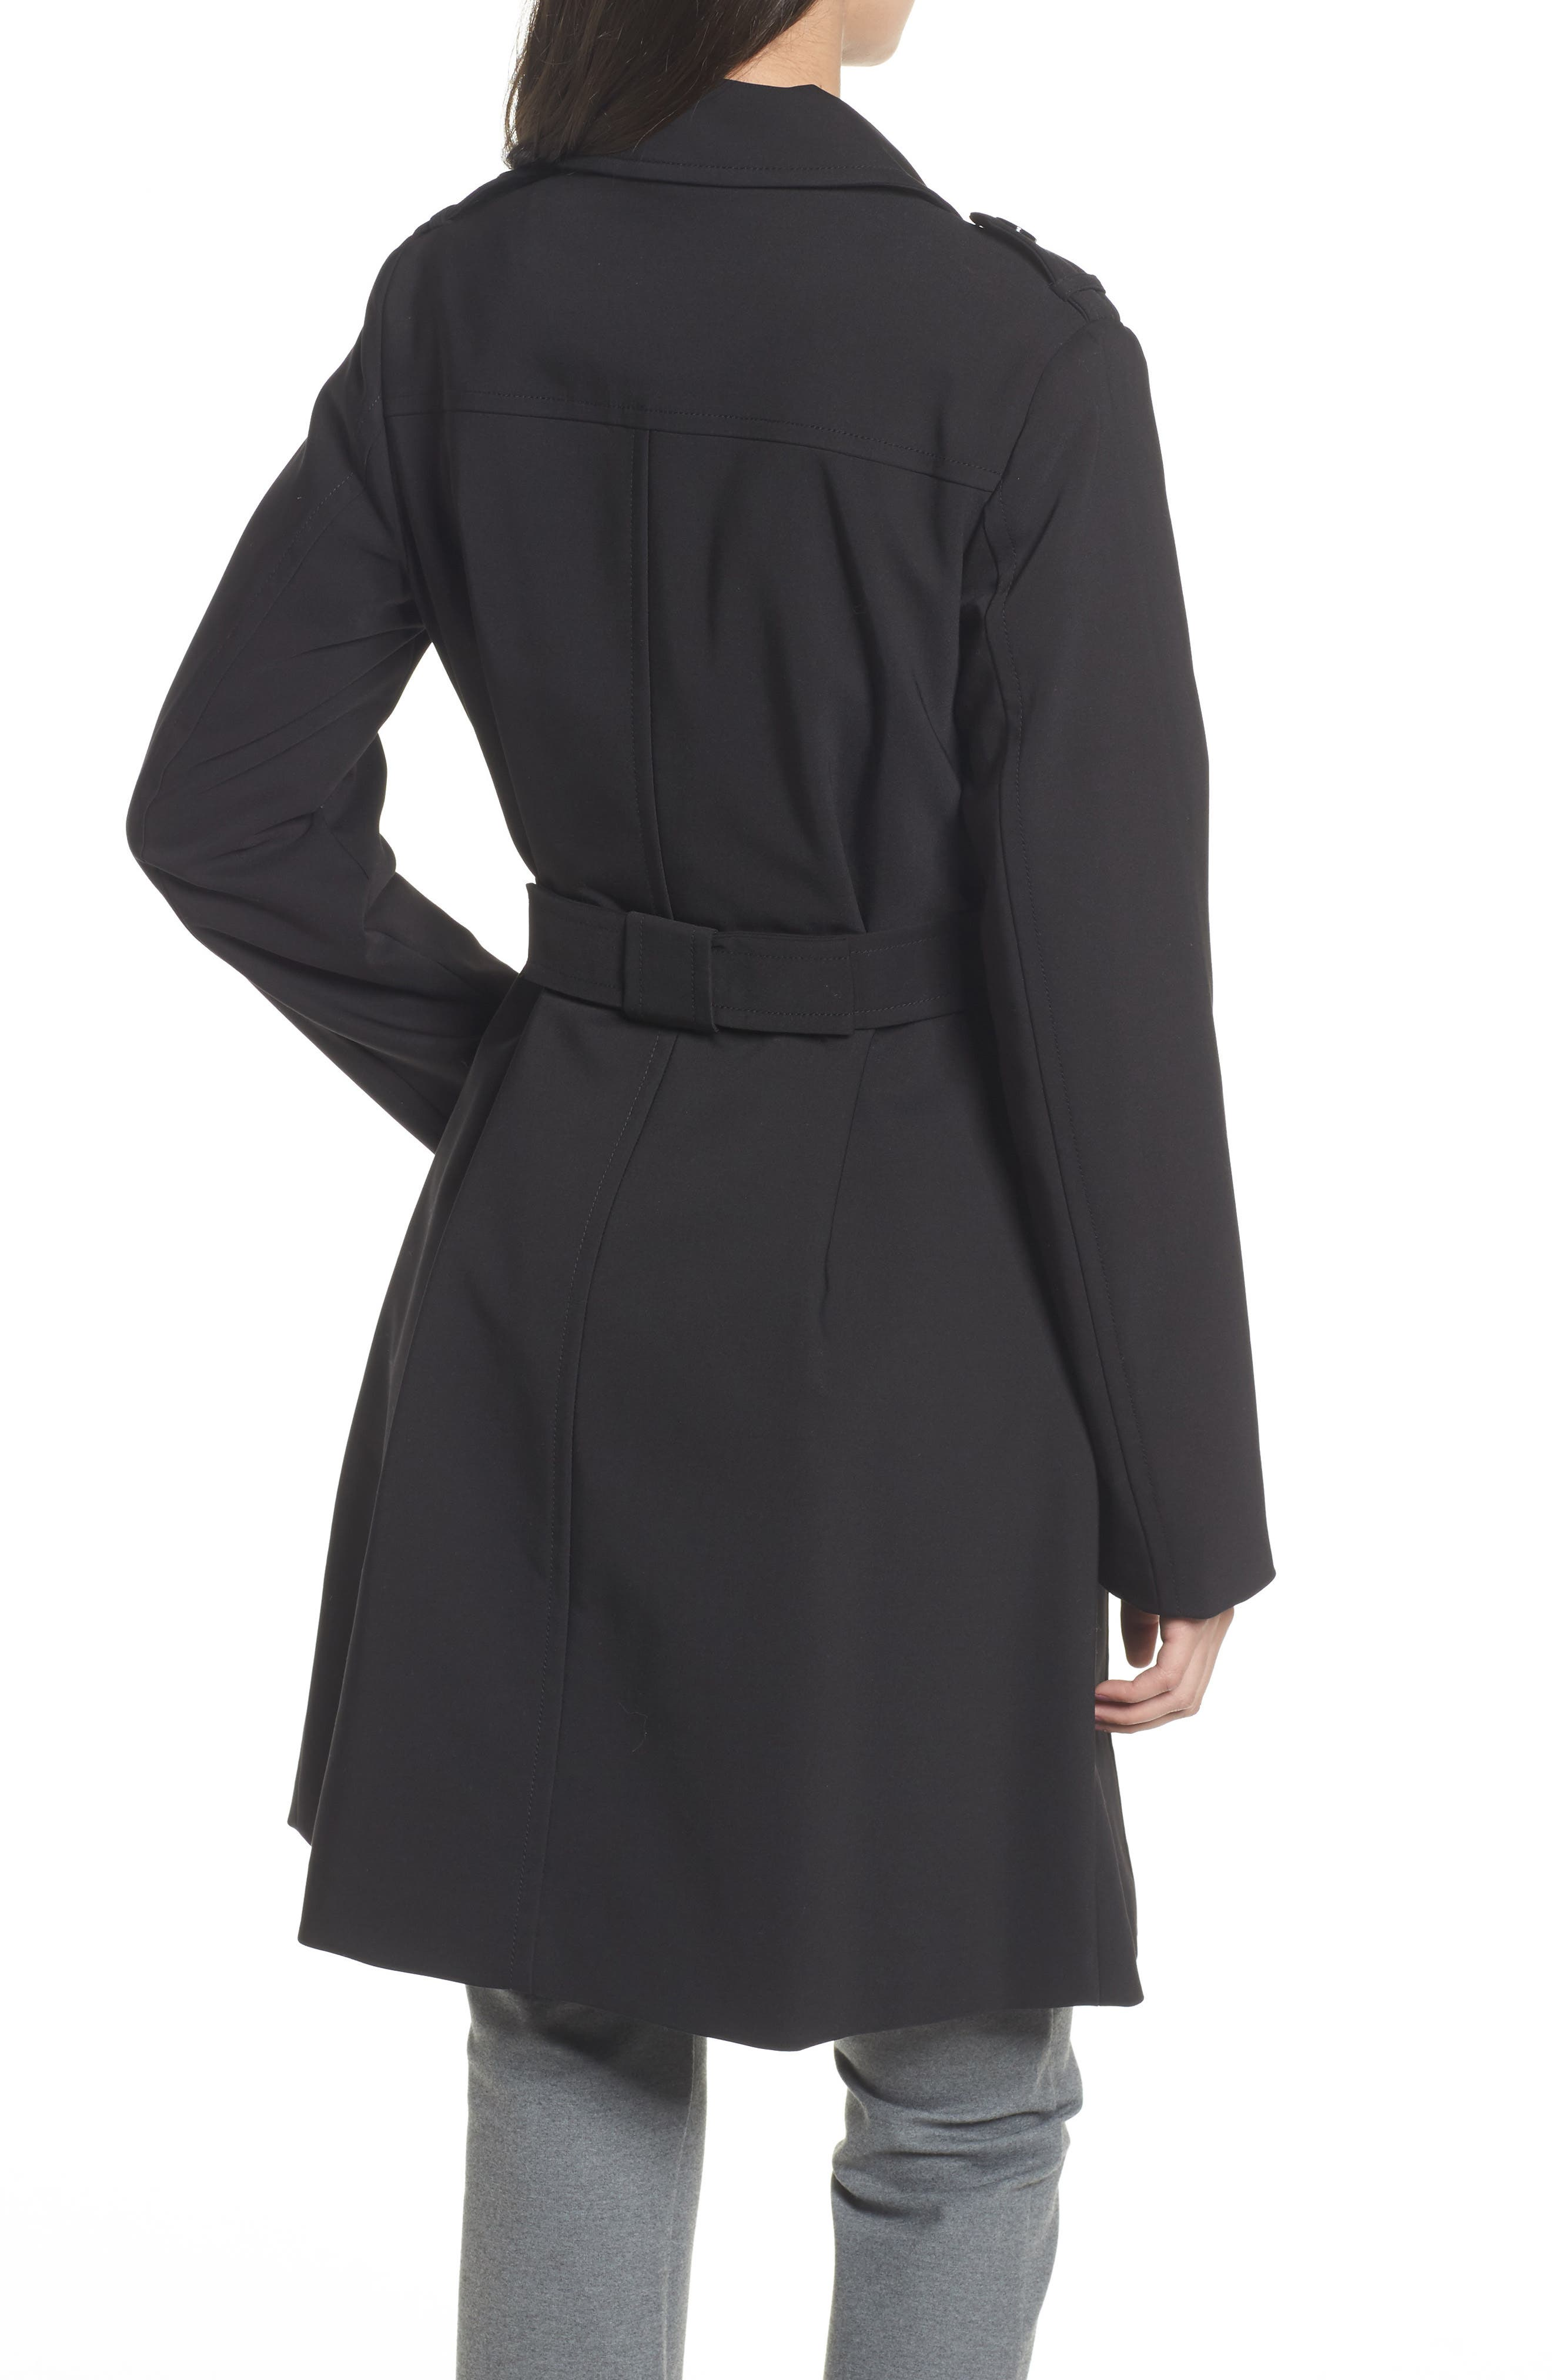 3-in-1 trench coat,                             Alternate thumbnail 2, color,                             001